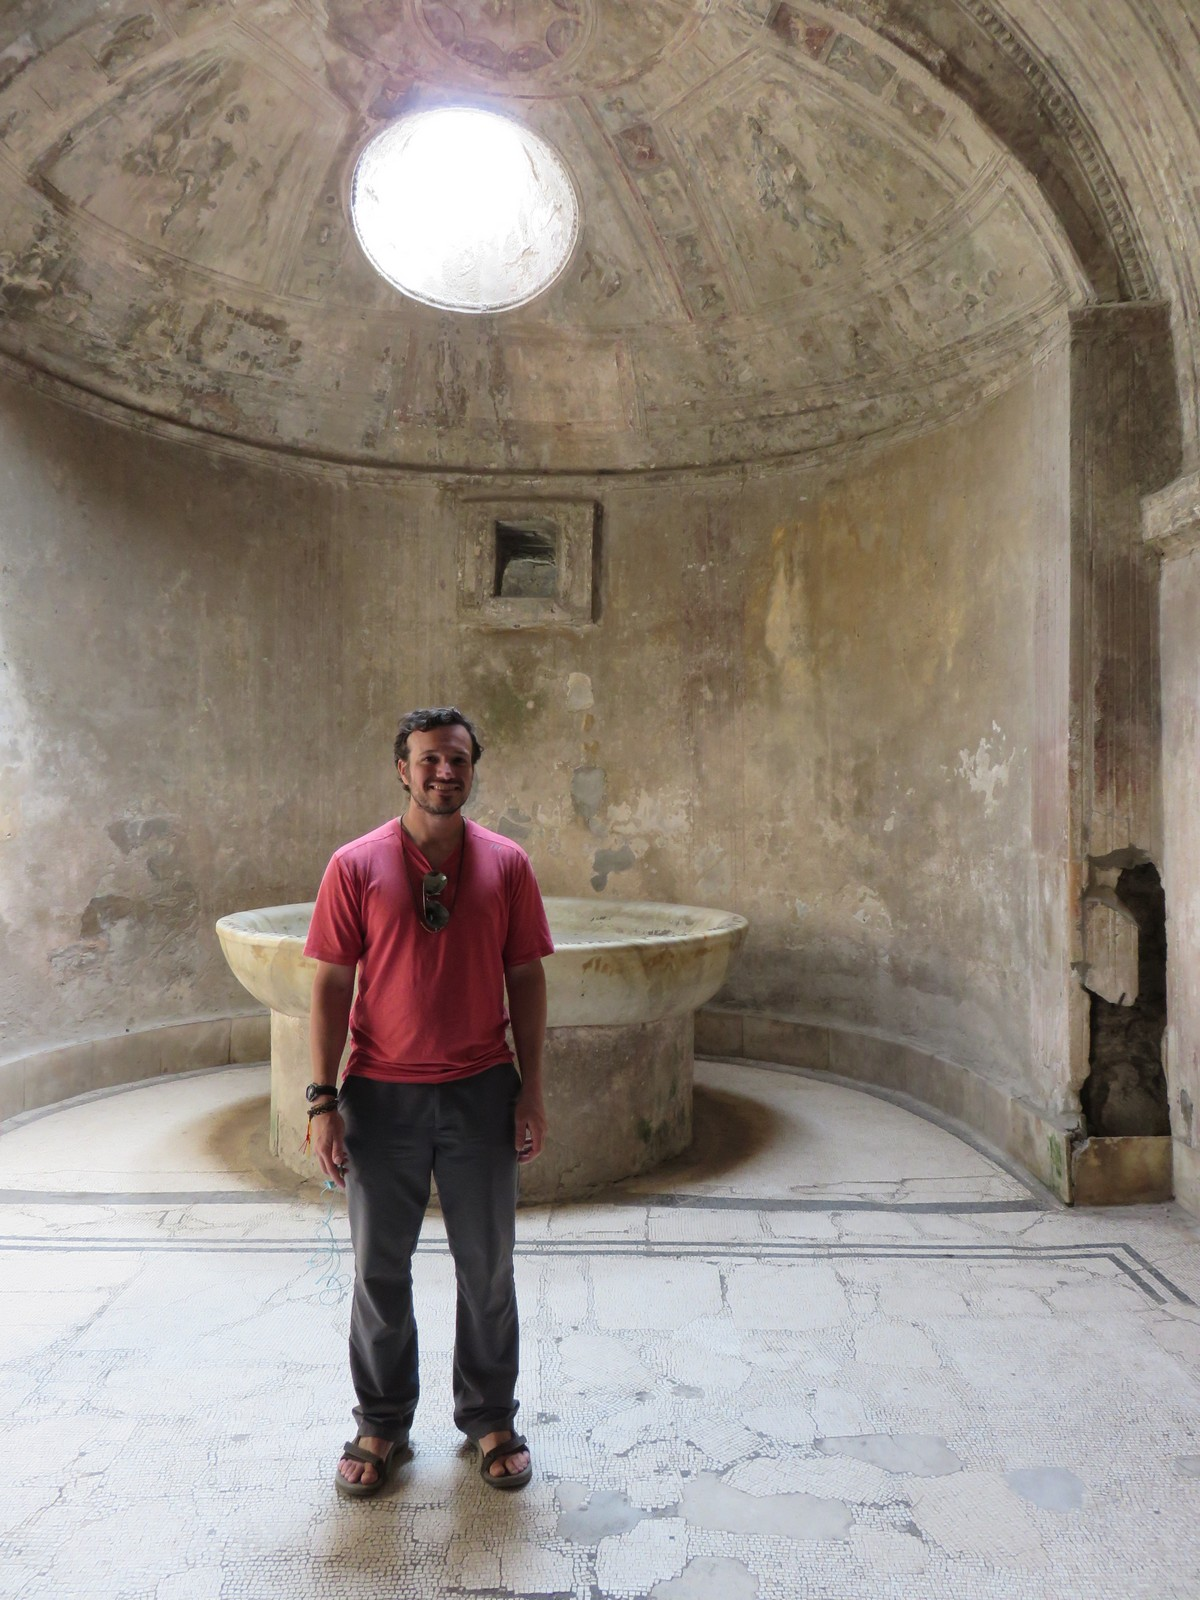 Chris in a real Roman bath!